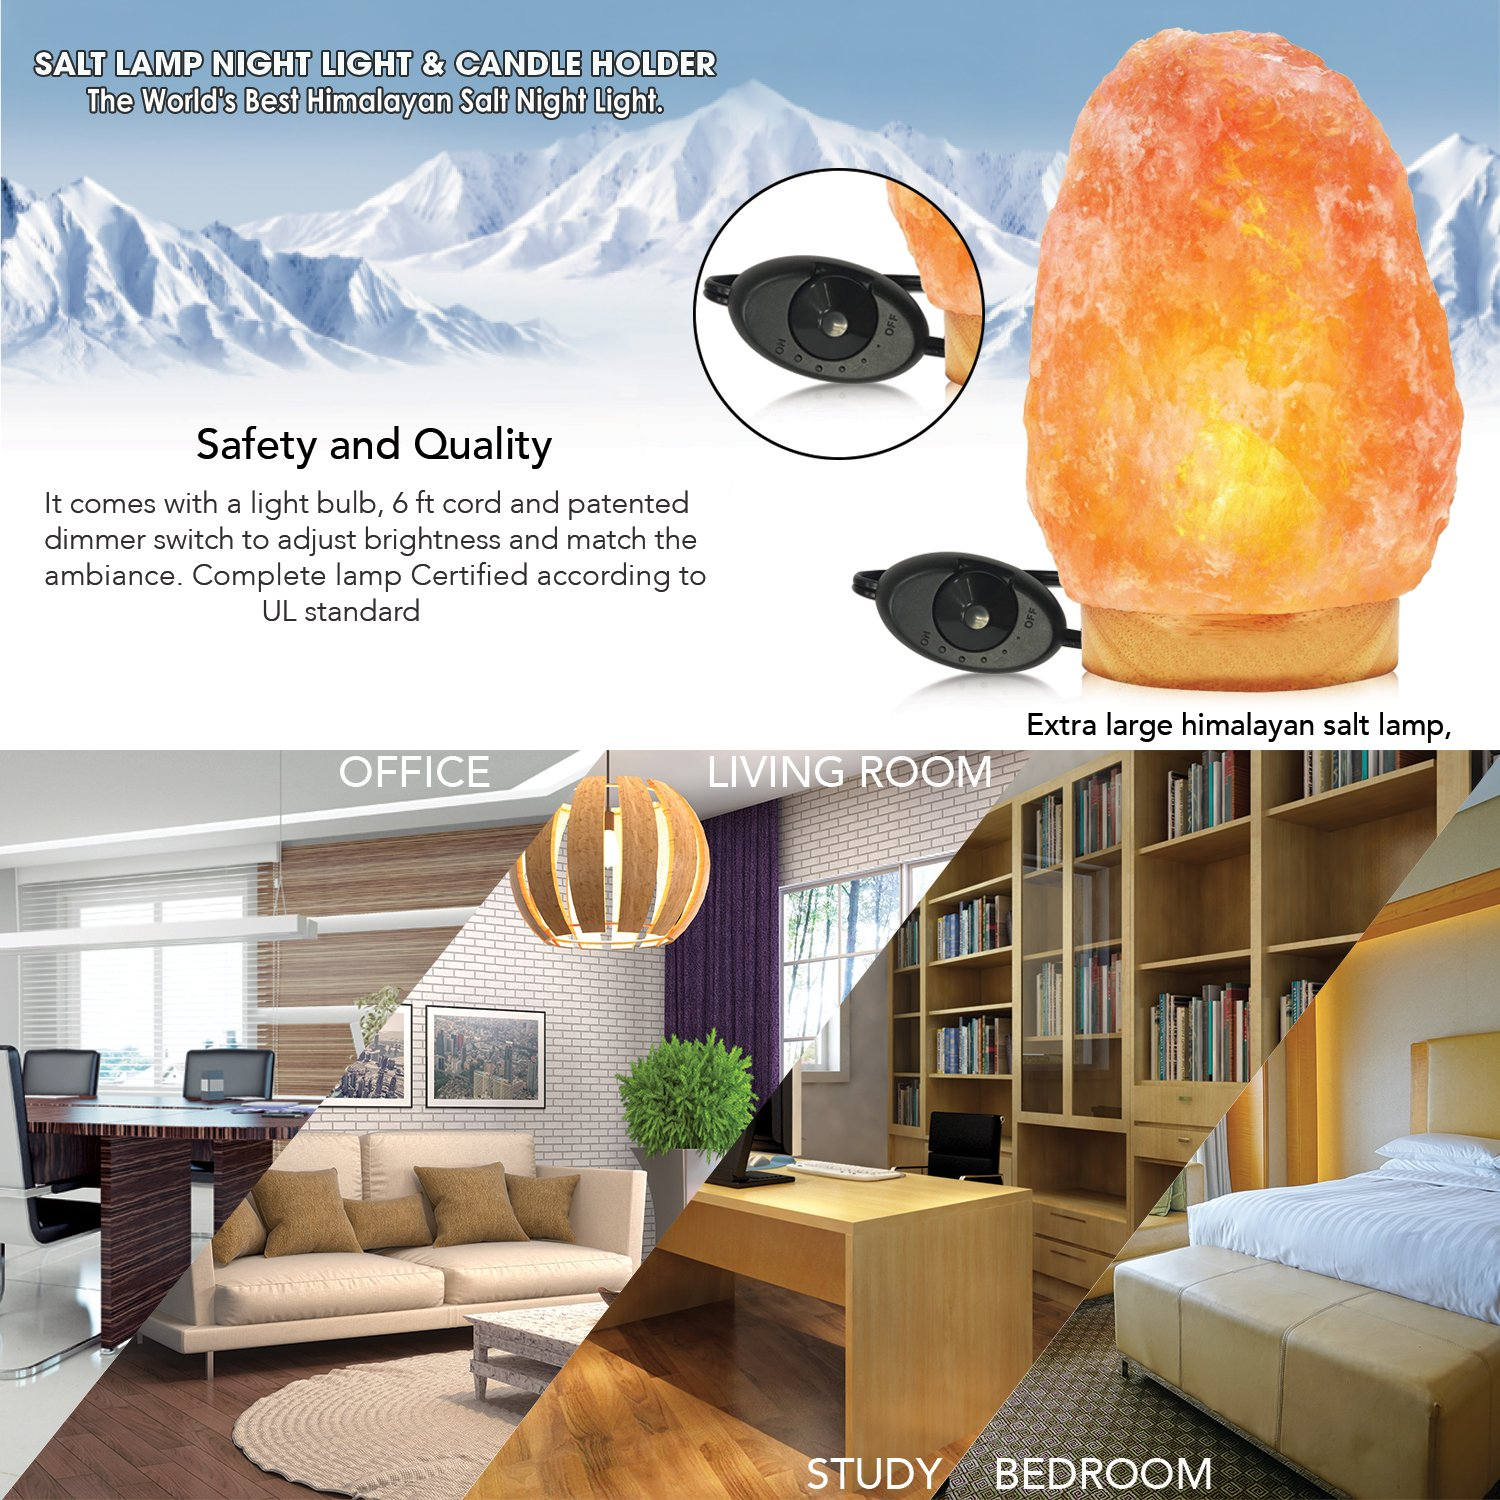 Himalayan Glow Salt Lamp, 1003 Extra large himalayan salt lamp, Dimmable Floor lamp with Neem Wooden base   11 to 15 lbs by WBM by Himalayan Glow (Image #7)